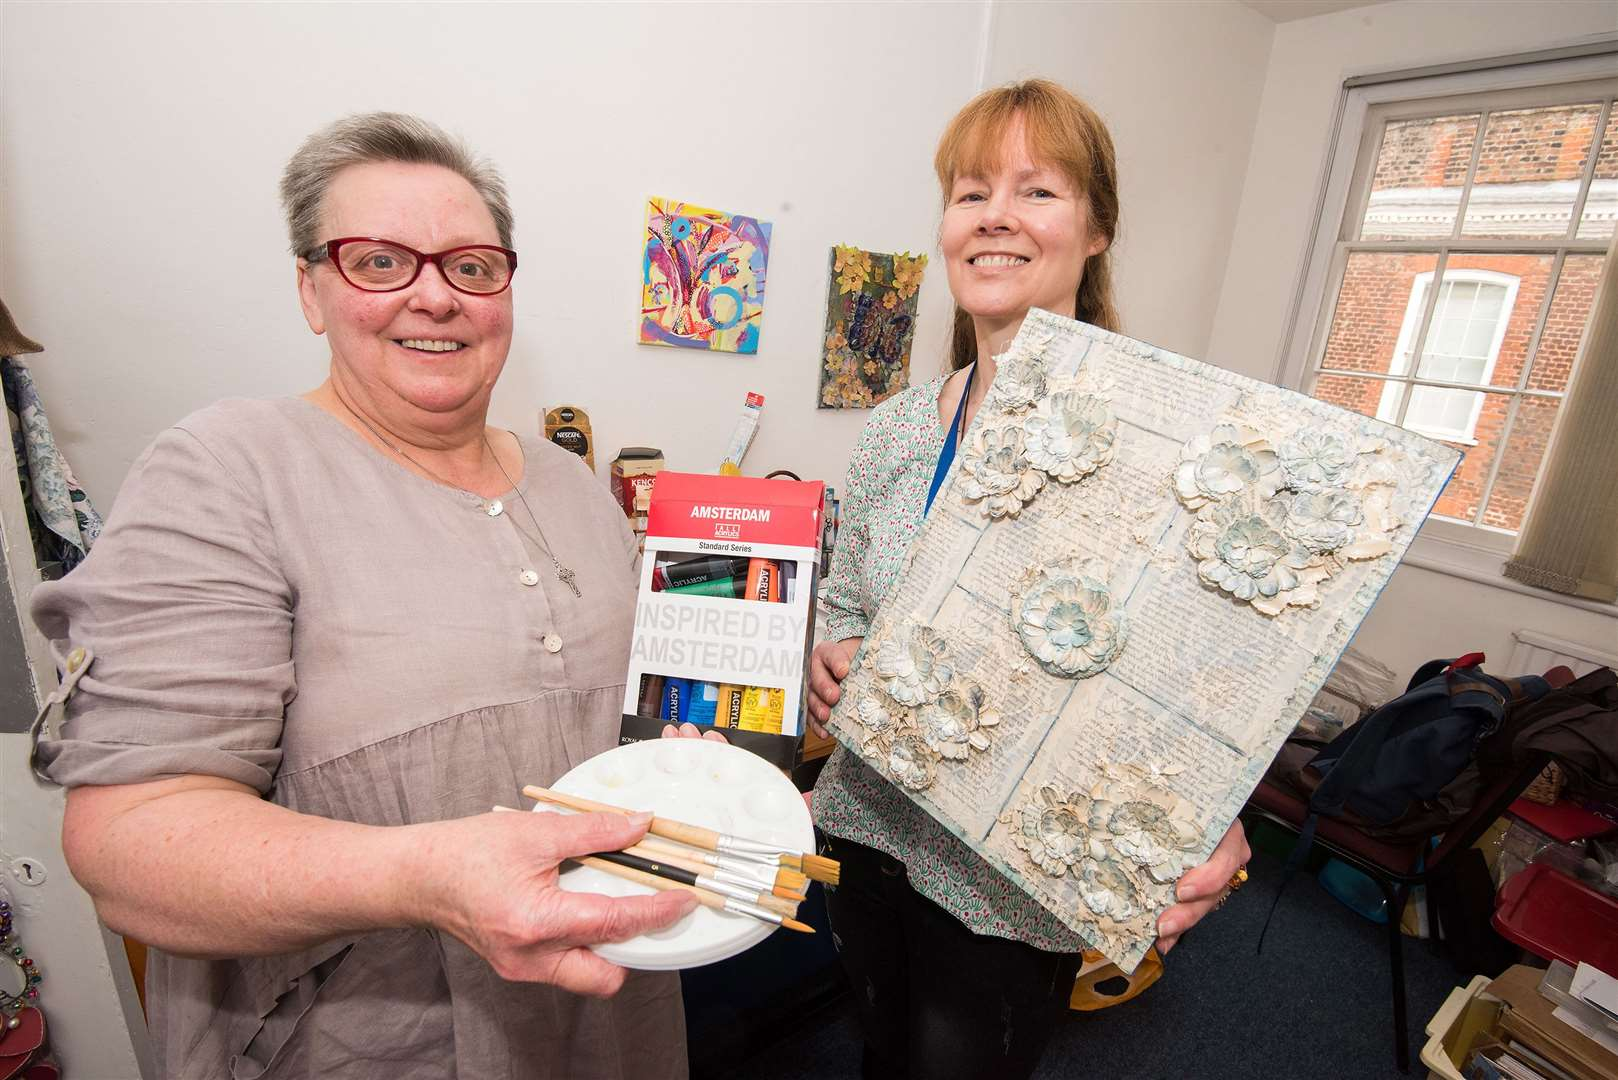 The Christopher Centre, 10 Gainsborough St, Sudbury Teresa Bishop and Karoline Wells.C'Art provides weekly art sessions for people with mental health conditions..Members take part in various creative projects, which has supported them through difficult situations..P Picture by Mark Westley. (38971546)